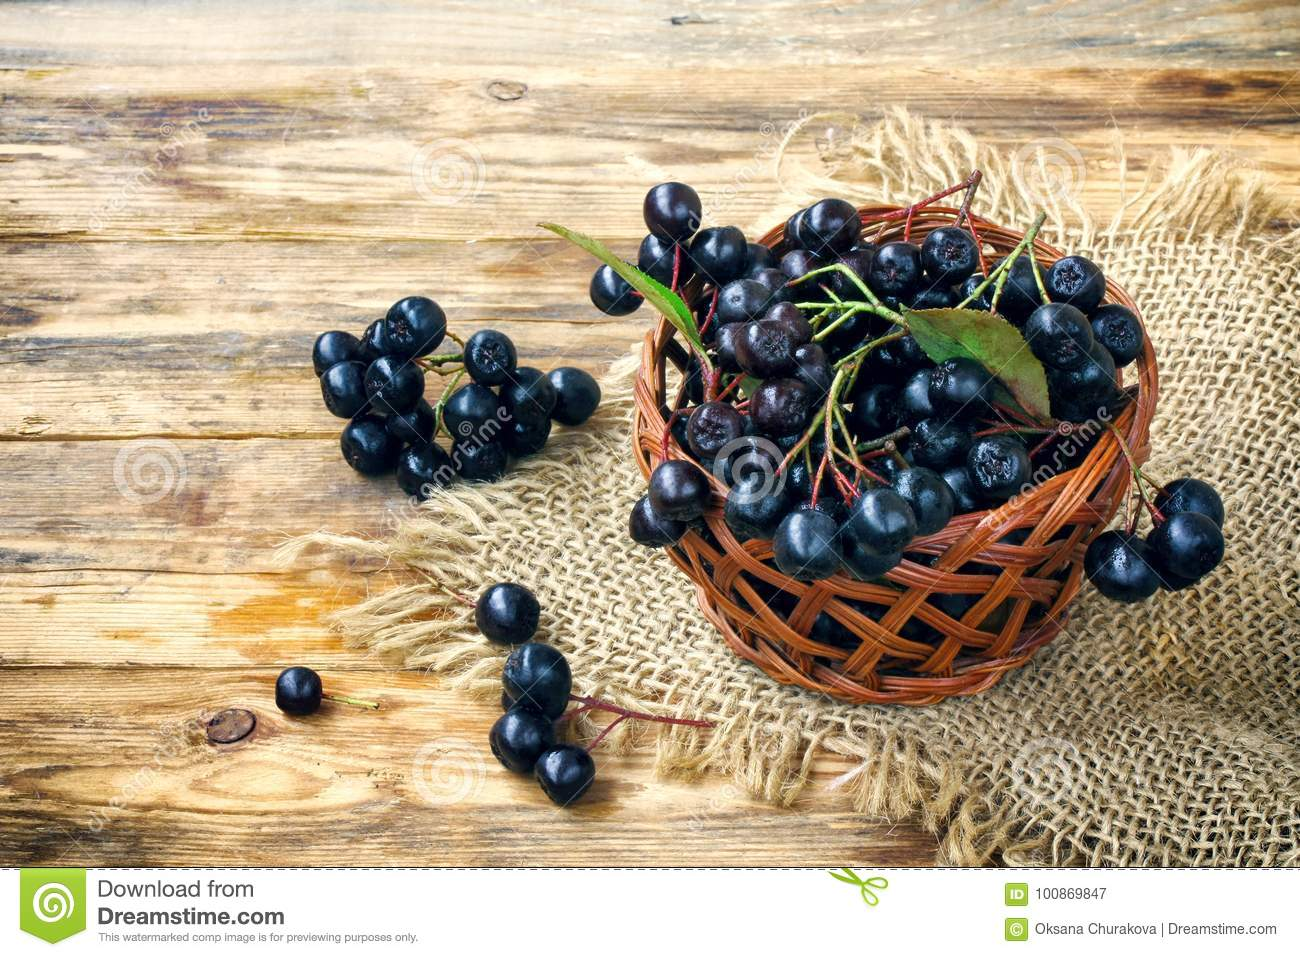 Bunches of chokeberry in wicker basket, burlap cloth